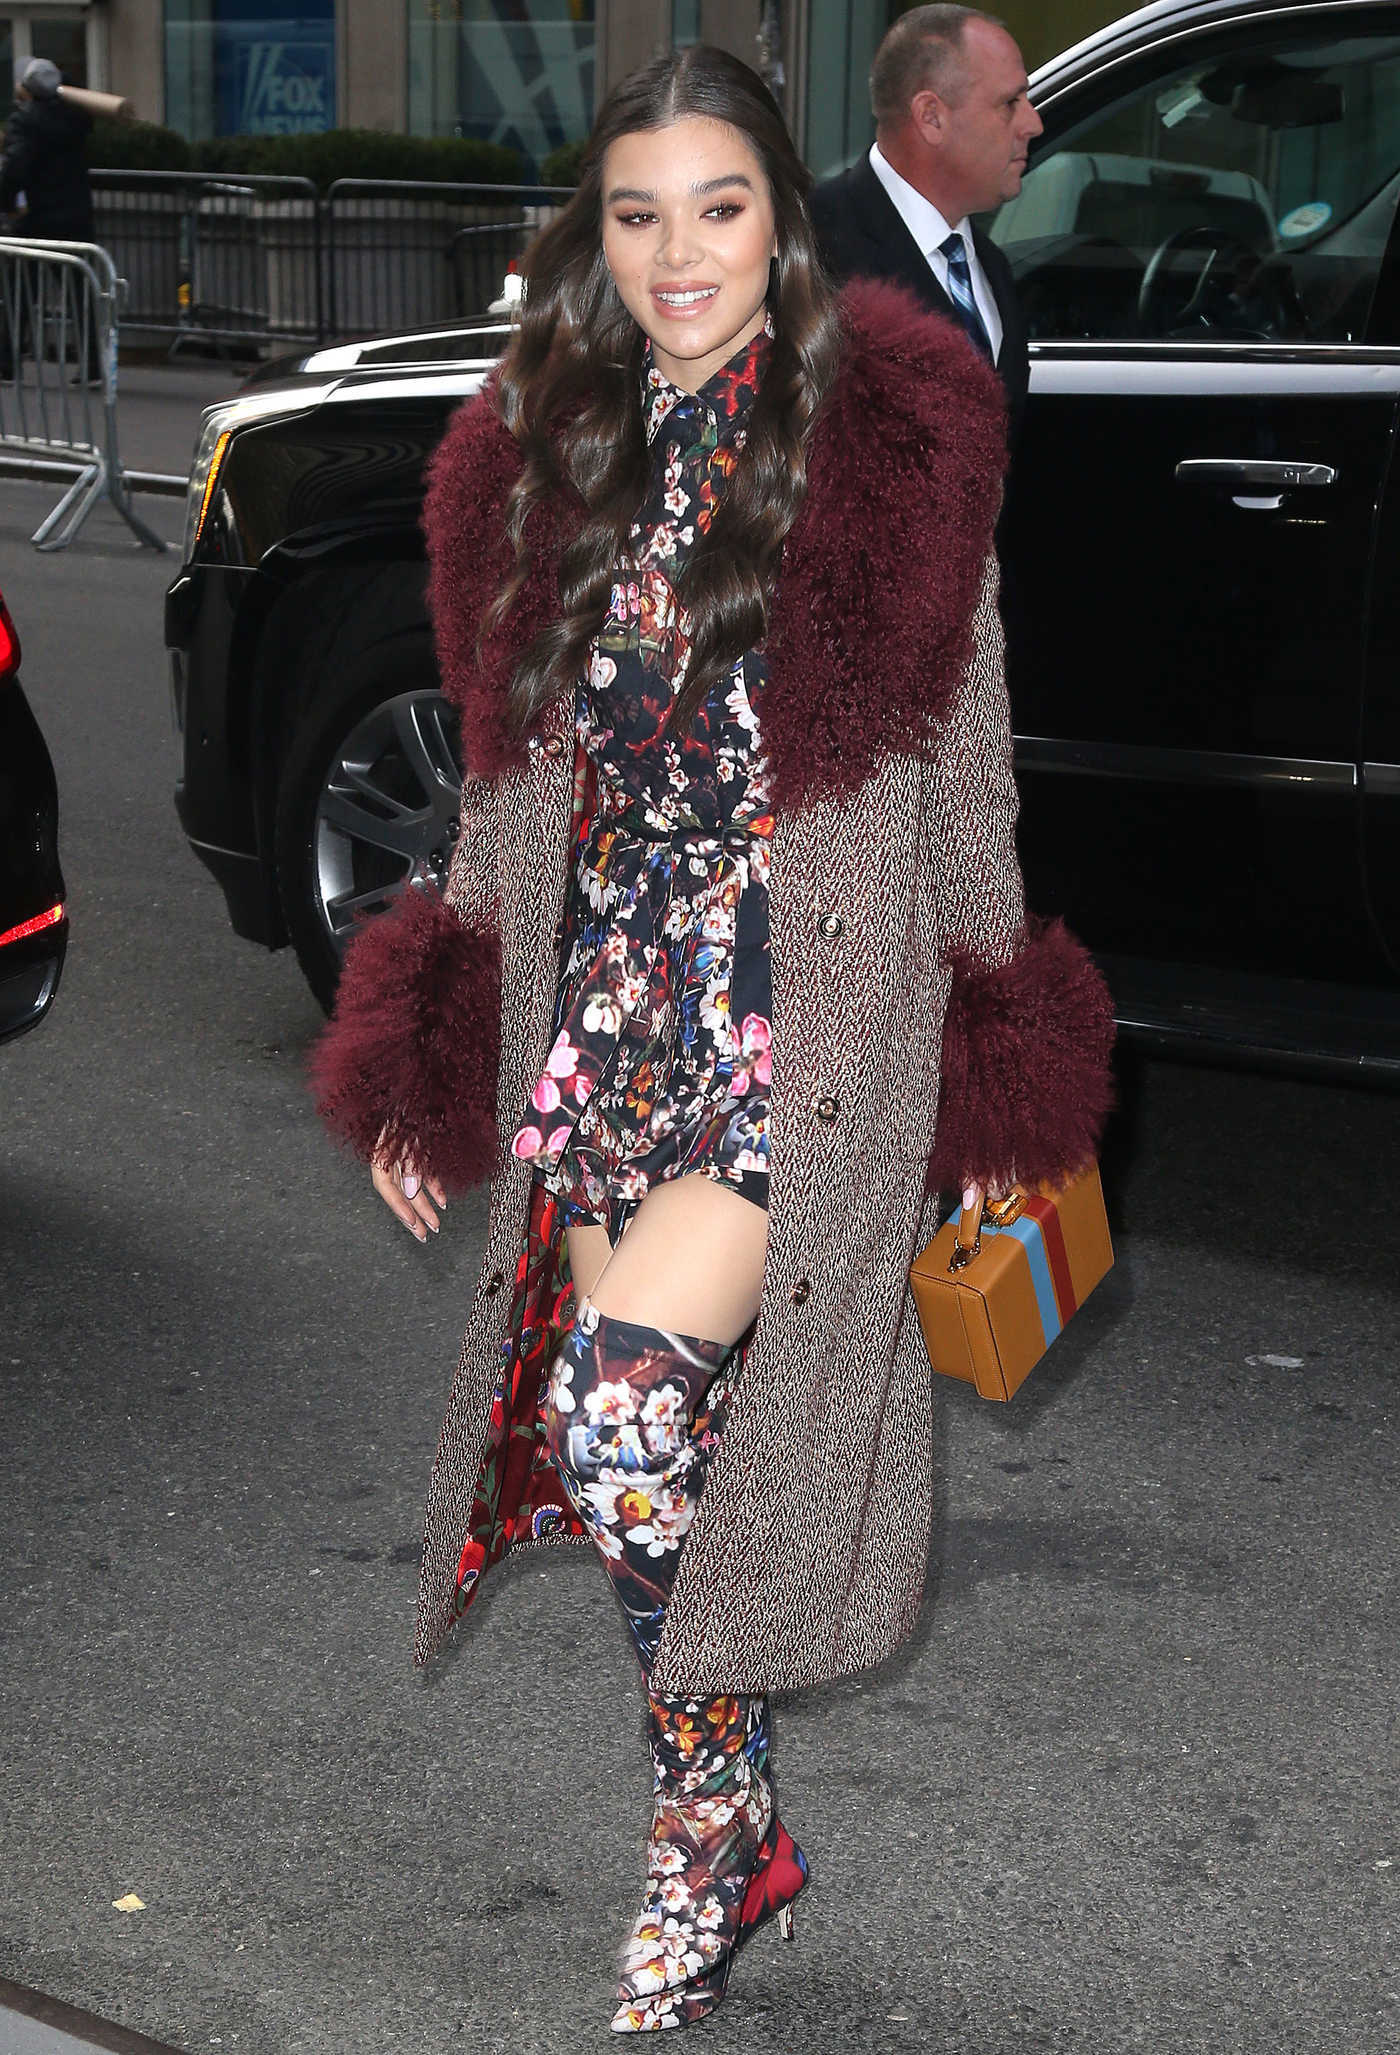 Hailee Steinfeld in a Long Floral Print Boots Leaves a Radio Show in NYC 12/20/2018